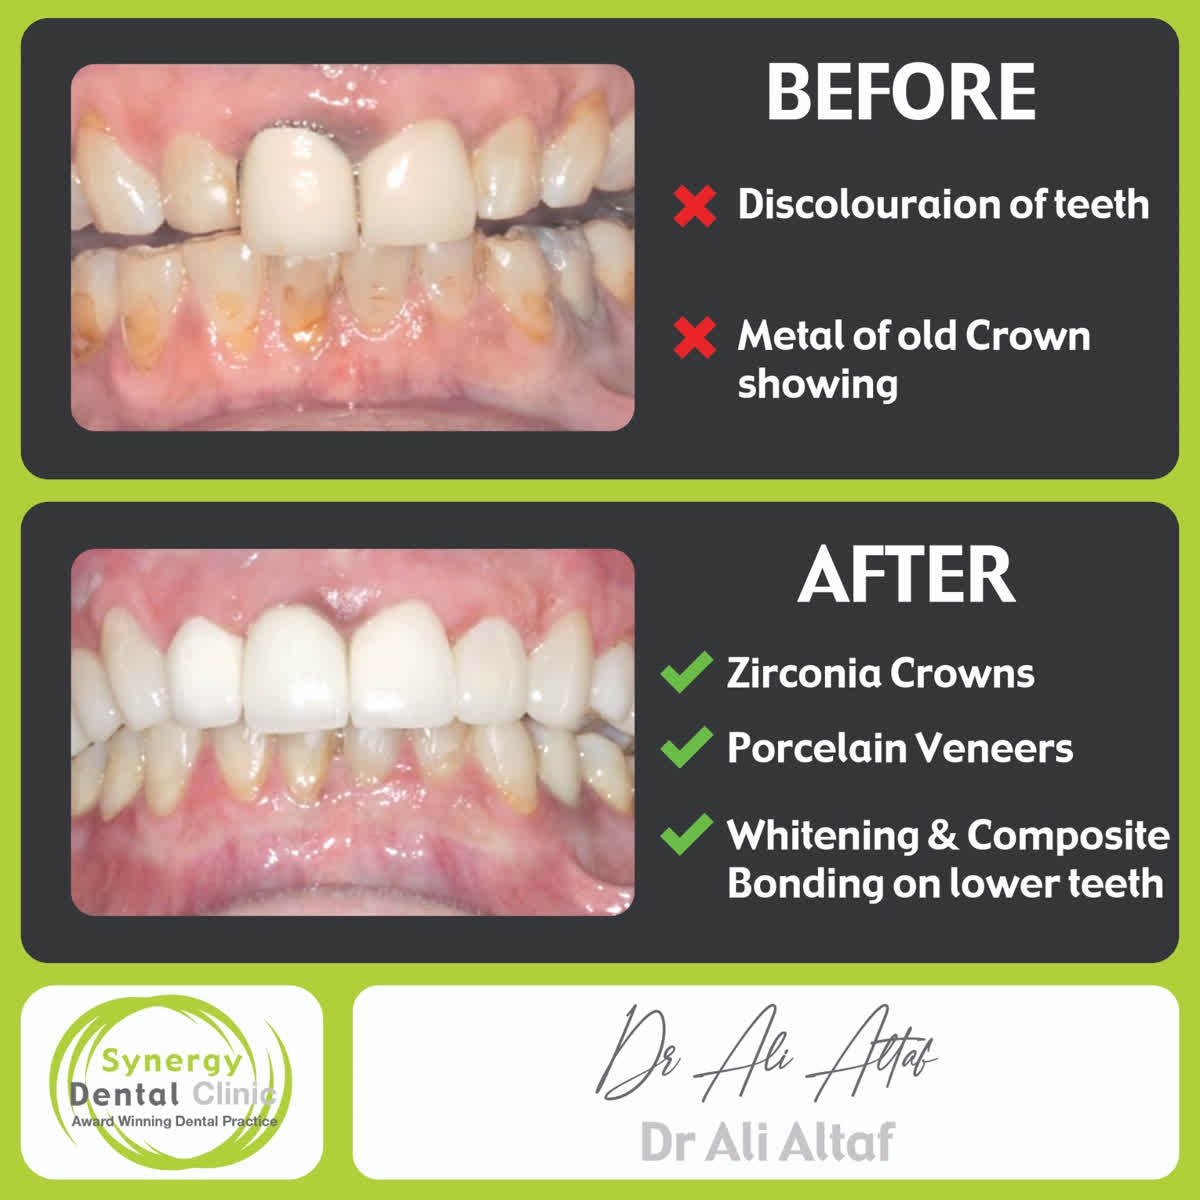 http://www.synergydental.org.uk    Instagram - http://www.instagram.com/synergydentalclinic/ …  Twitter - SynergyDentist   Youtube - Synergy Dental Clinics . . . . #toothwhitening #teethwhitening #smilemakeover #dentist #transformation #dentalphotography #cosmetics #makeupartist #fffpic.twitter.com/IubxPv83Id